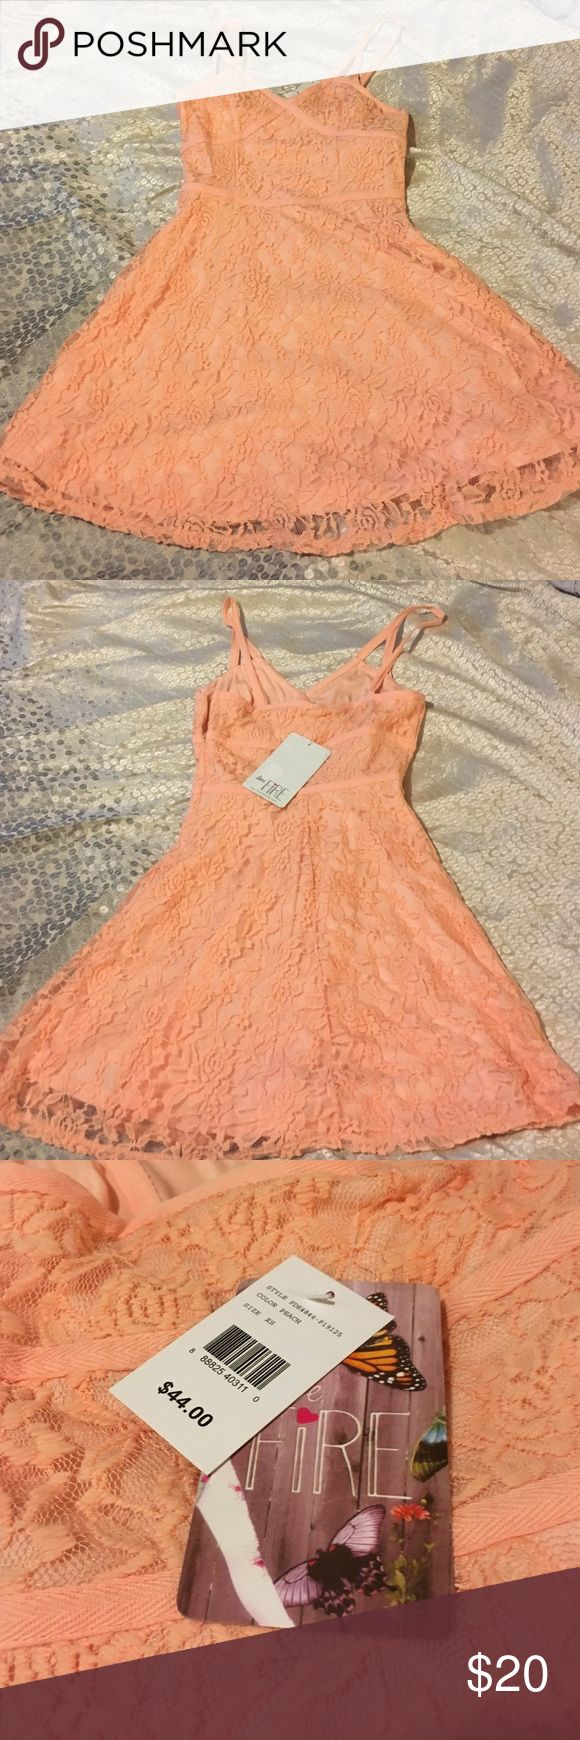 Gorgeous Nordstrom peach lace dress BEAUTIFUL DETAILED NORDSTROM DRESS. Never worn, New with tags. love, fire clothing Dresses Midi